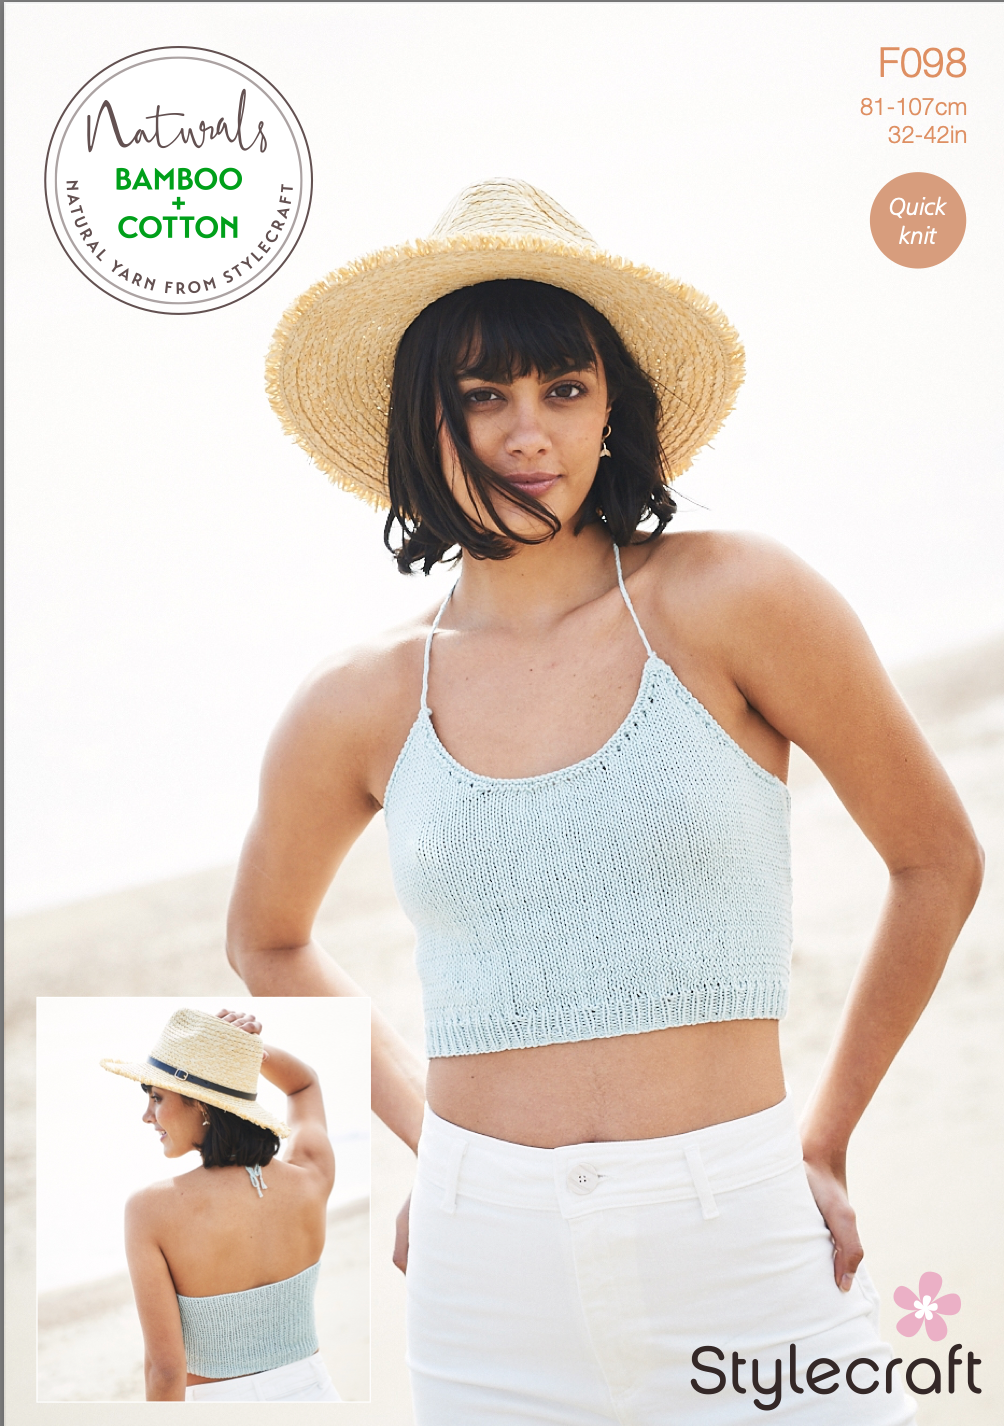 Stylecraft Naturals Bamboo + Cotton Cropped Top Pattern (free download) product image